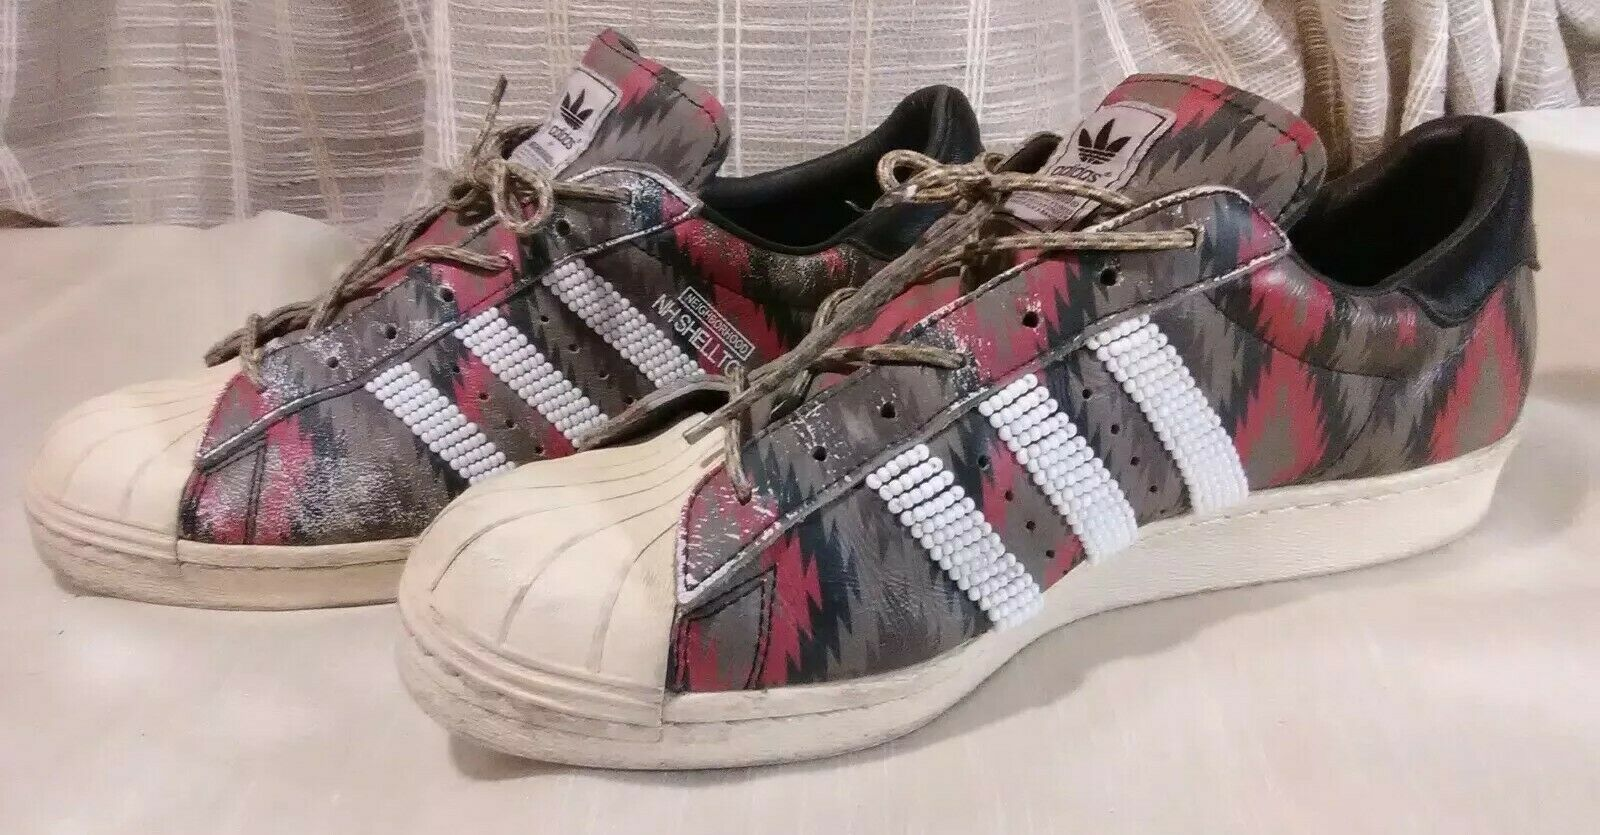 Adidas Originals Men's Neighborhood Shell-Toe shoes Size 10.5 us M25786 beaded